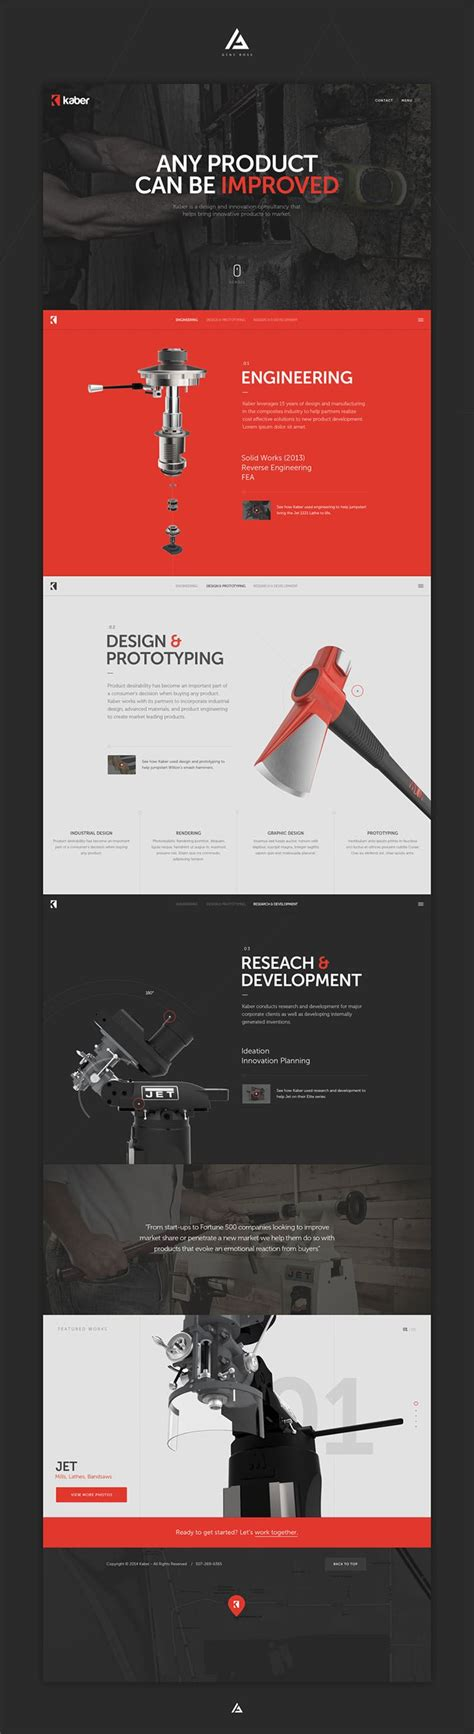 design inspiration 20 clean web design inspiration 2015